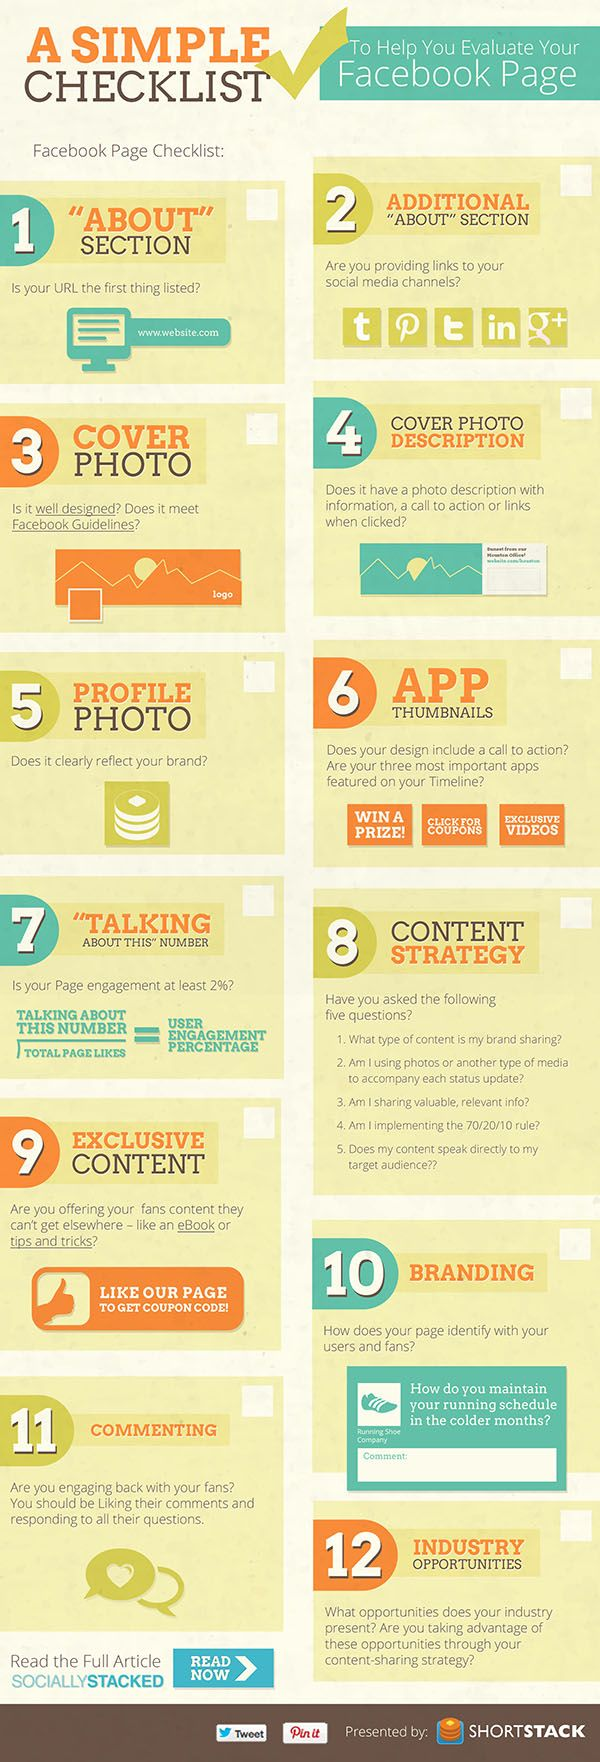 A Simple Checklist To Help You Evaluate Your Facebook Page - #infographic